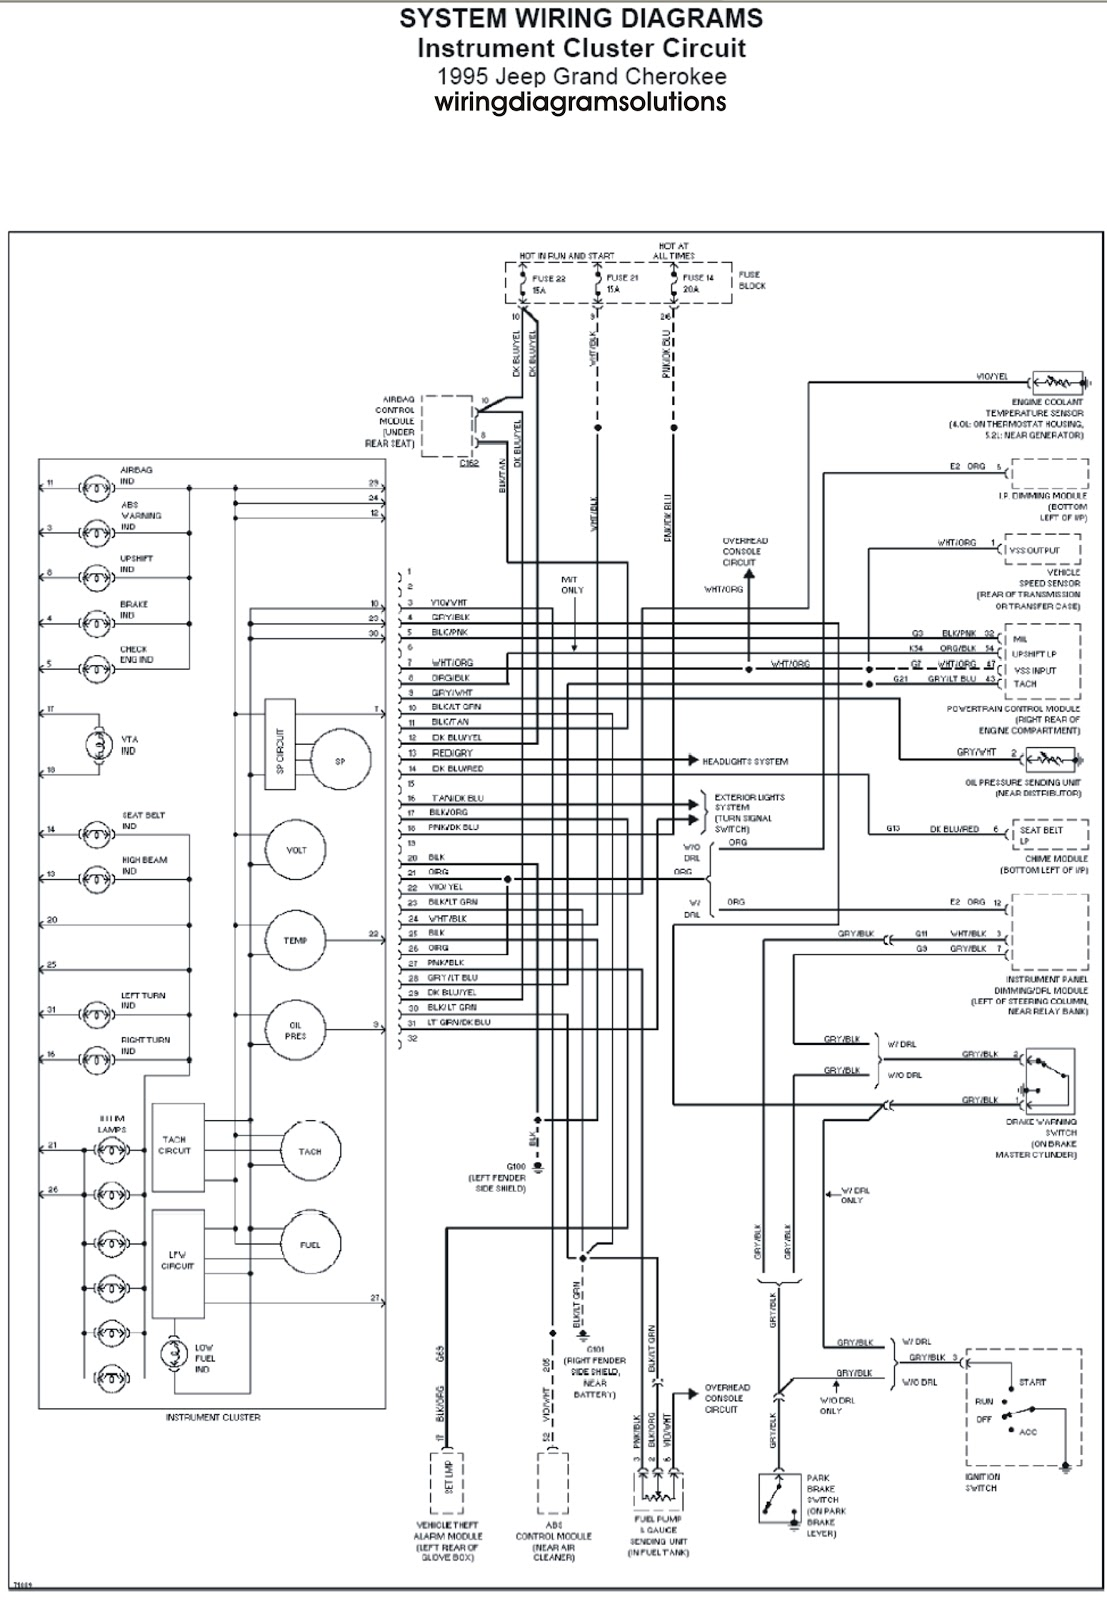 can bus wiring system free download wiring diagram schematic location 2014 jeep wrangler free download wiring diagram schematic [ 1107 x 1600 Pixel ]